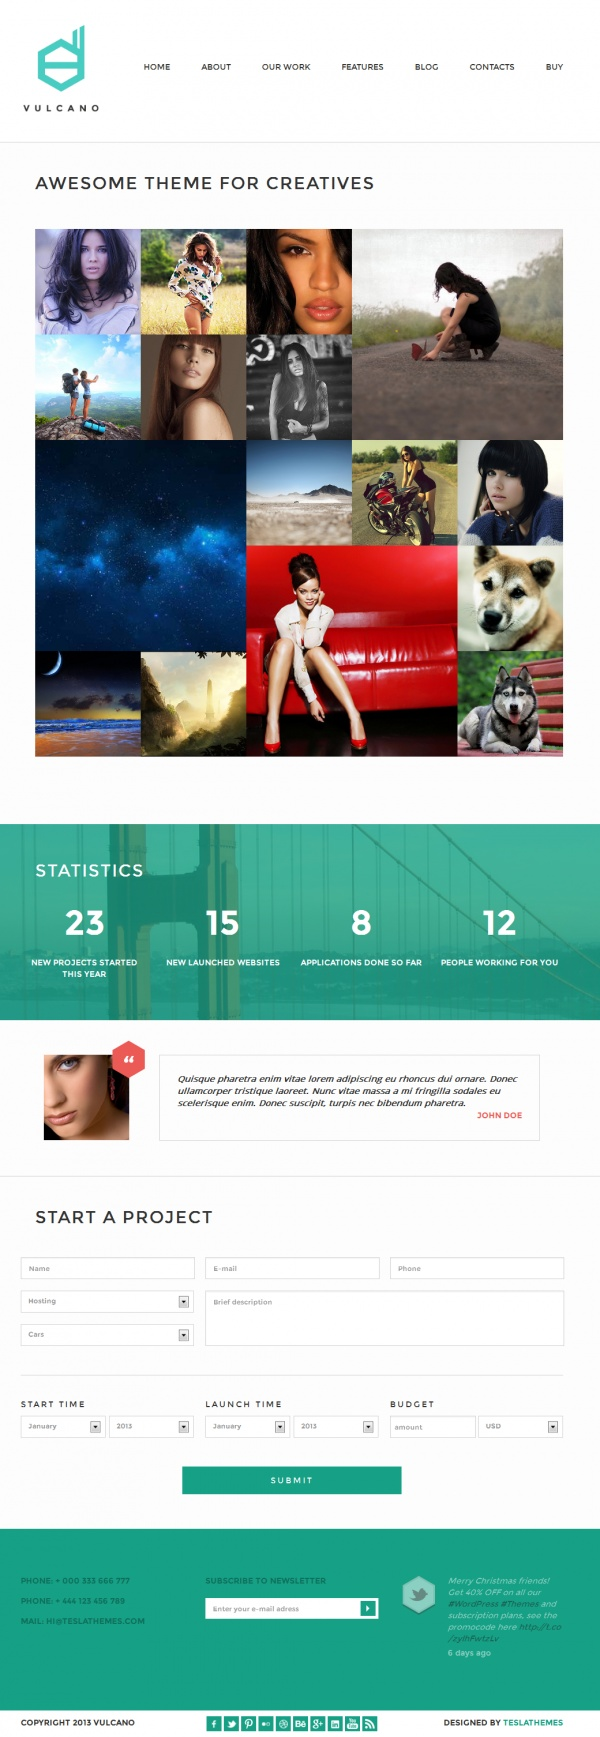 Vulcano Best Creative WordPress Themes June